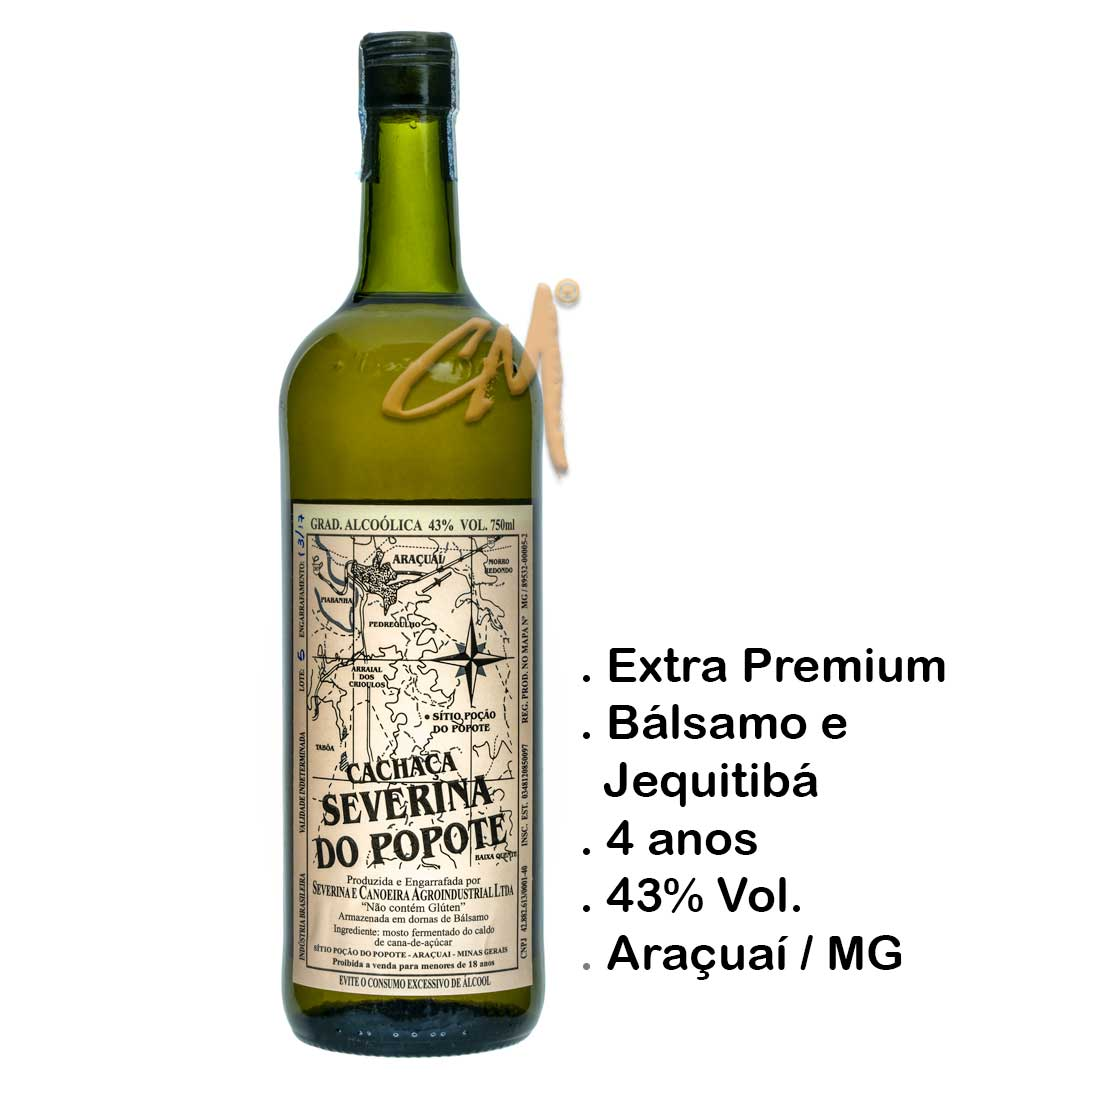 Cachaça Severina do Popote 750 ml (Araçuaí - MG)